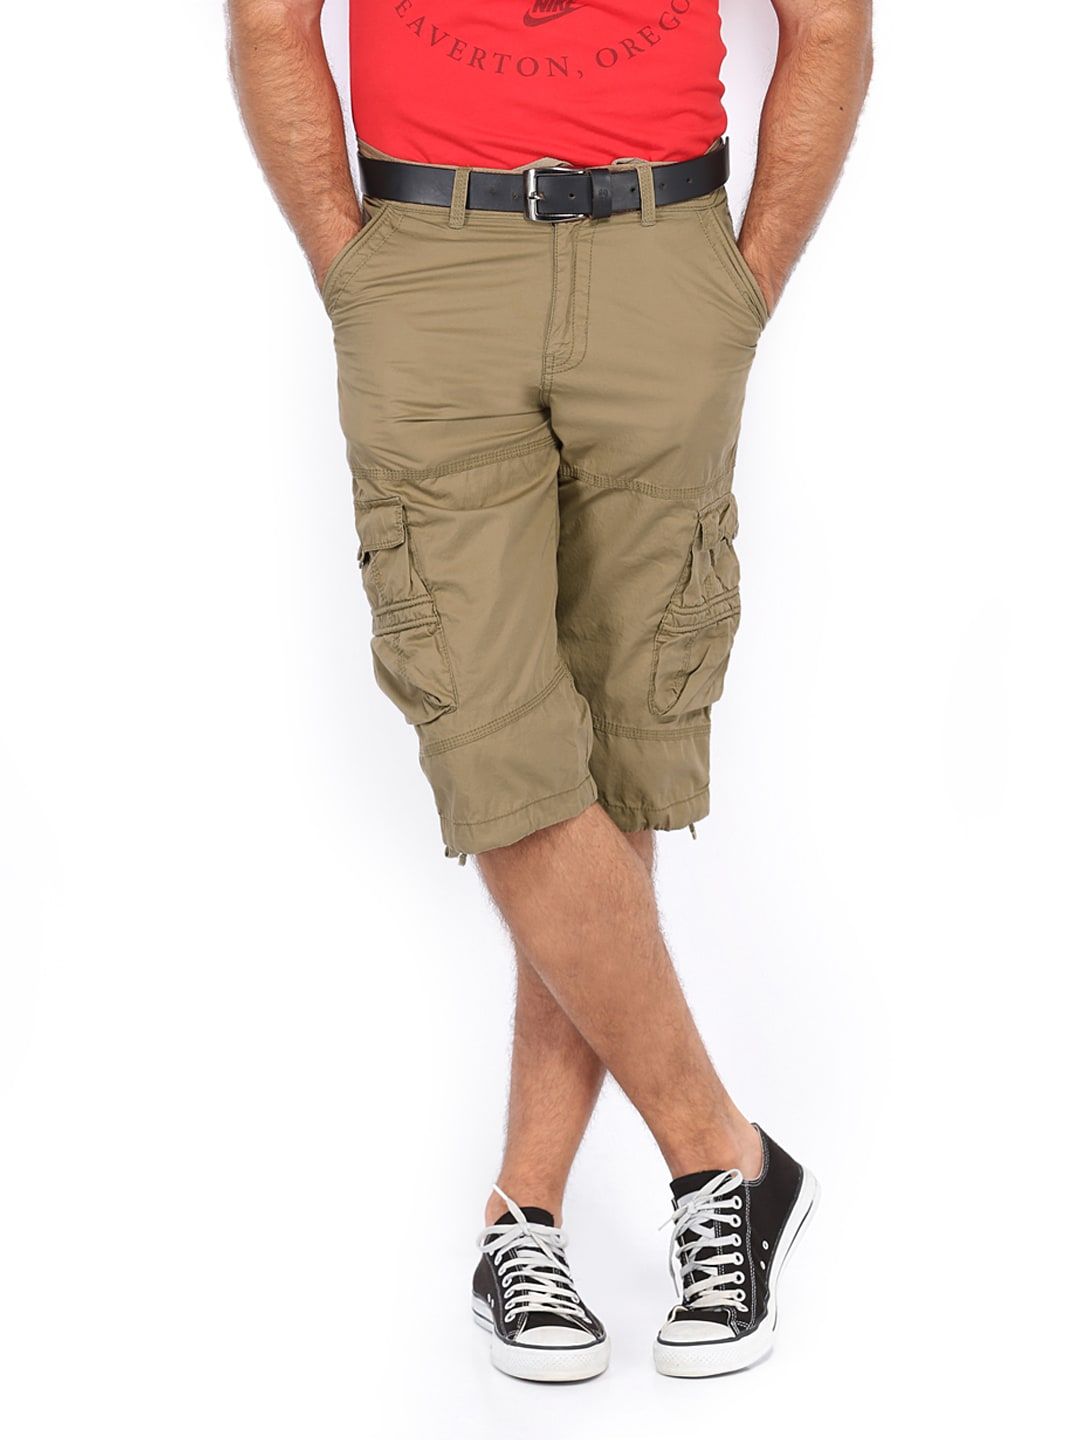 Mens Shorts. A summer wardrobe staple, a pair of men's shorts is perfect for anything from a day golfing to hitting the beach to hanging out at a BBQ. Brave Soul Mens Ardwick 3/4 Cargo Shorts Stone £ Save £ Select Size Small Waist